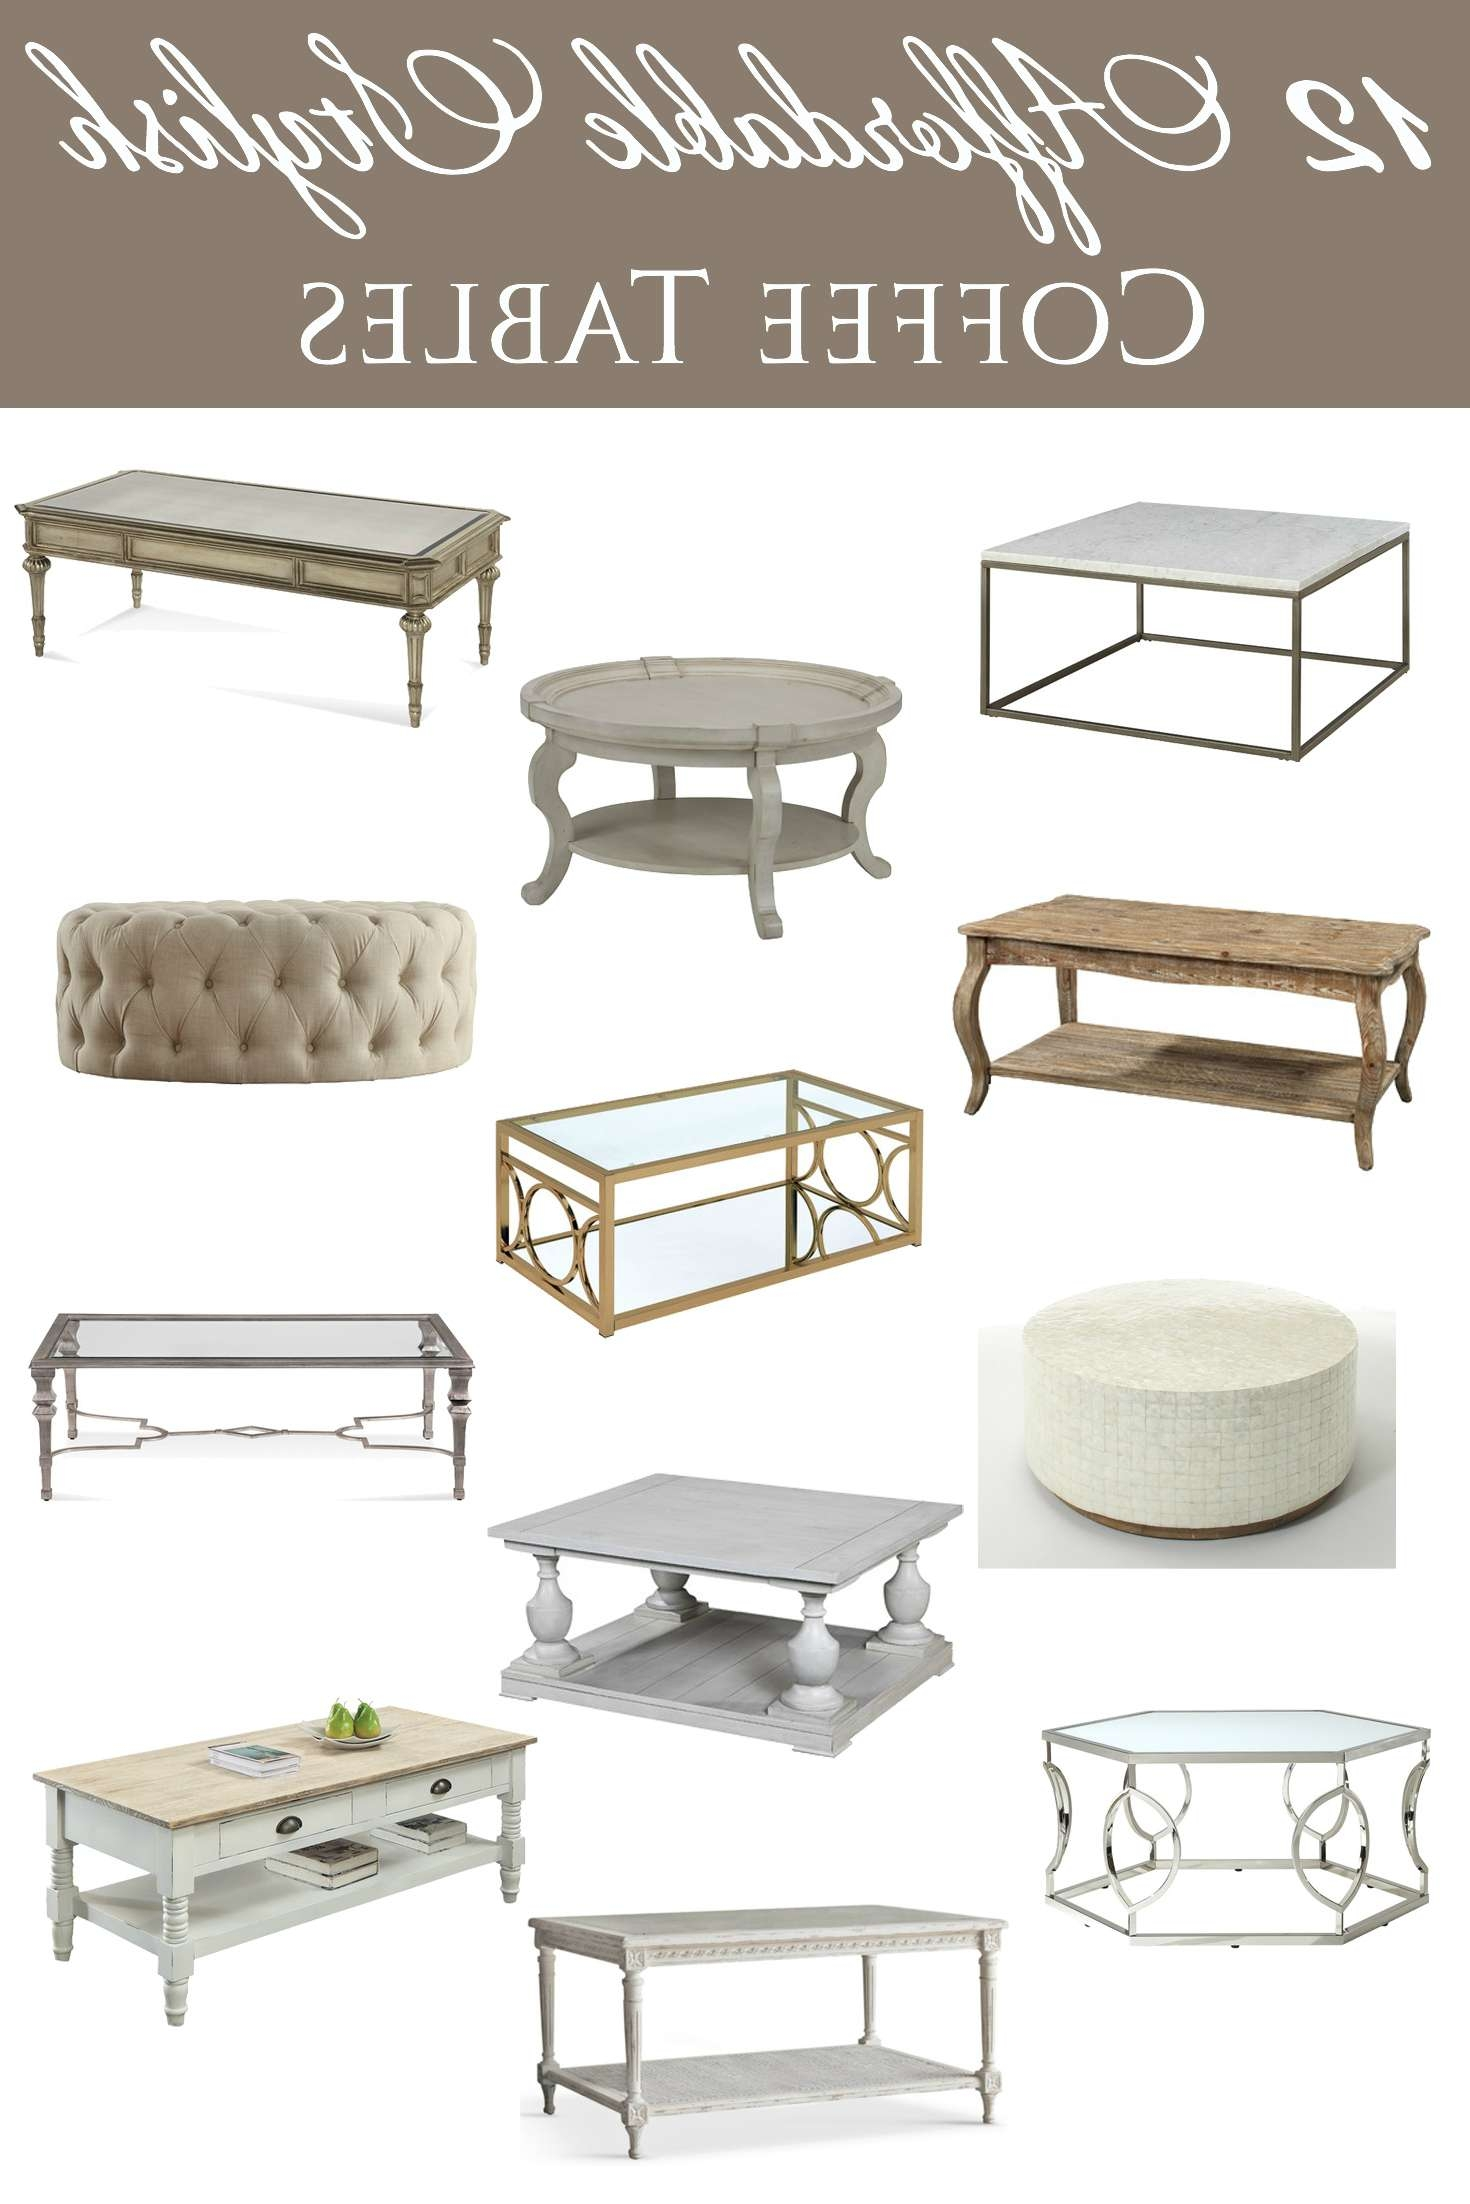 12 Affordable Stylish Coffee Tables Throughout Popular Stylish Coffee Tables (View 1 of 20)